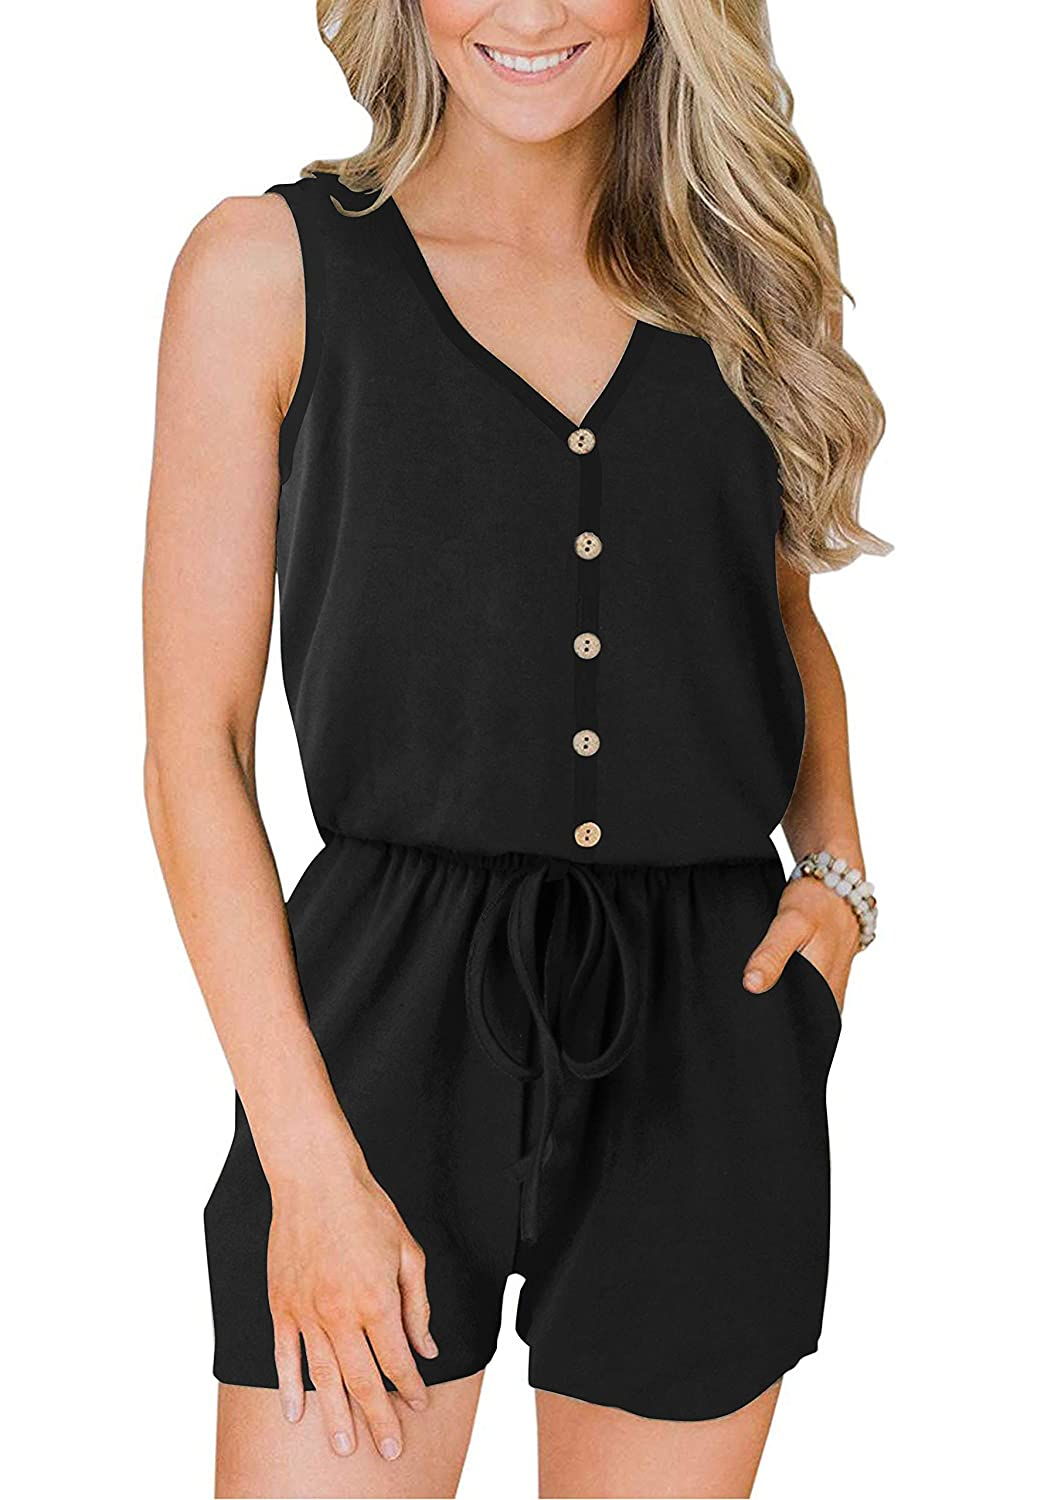 ANRABESS Women/'s Summer Casual Sleeveless Front Button Loose Jumpsuits Rompers with Pockets